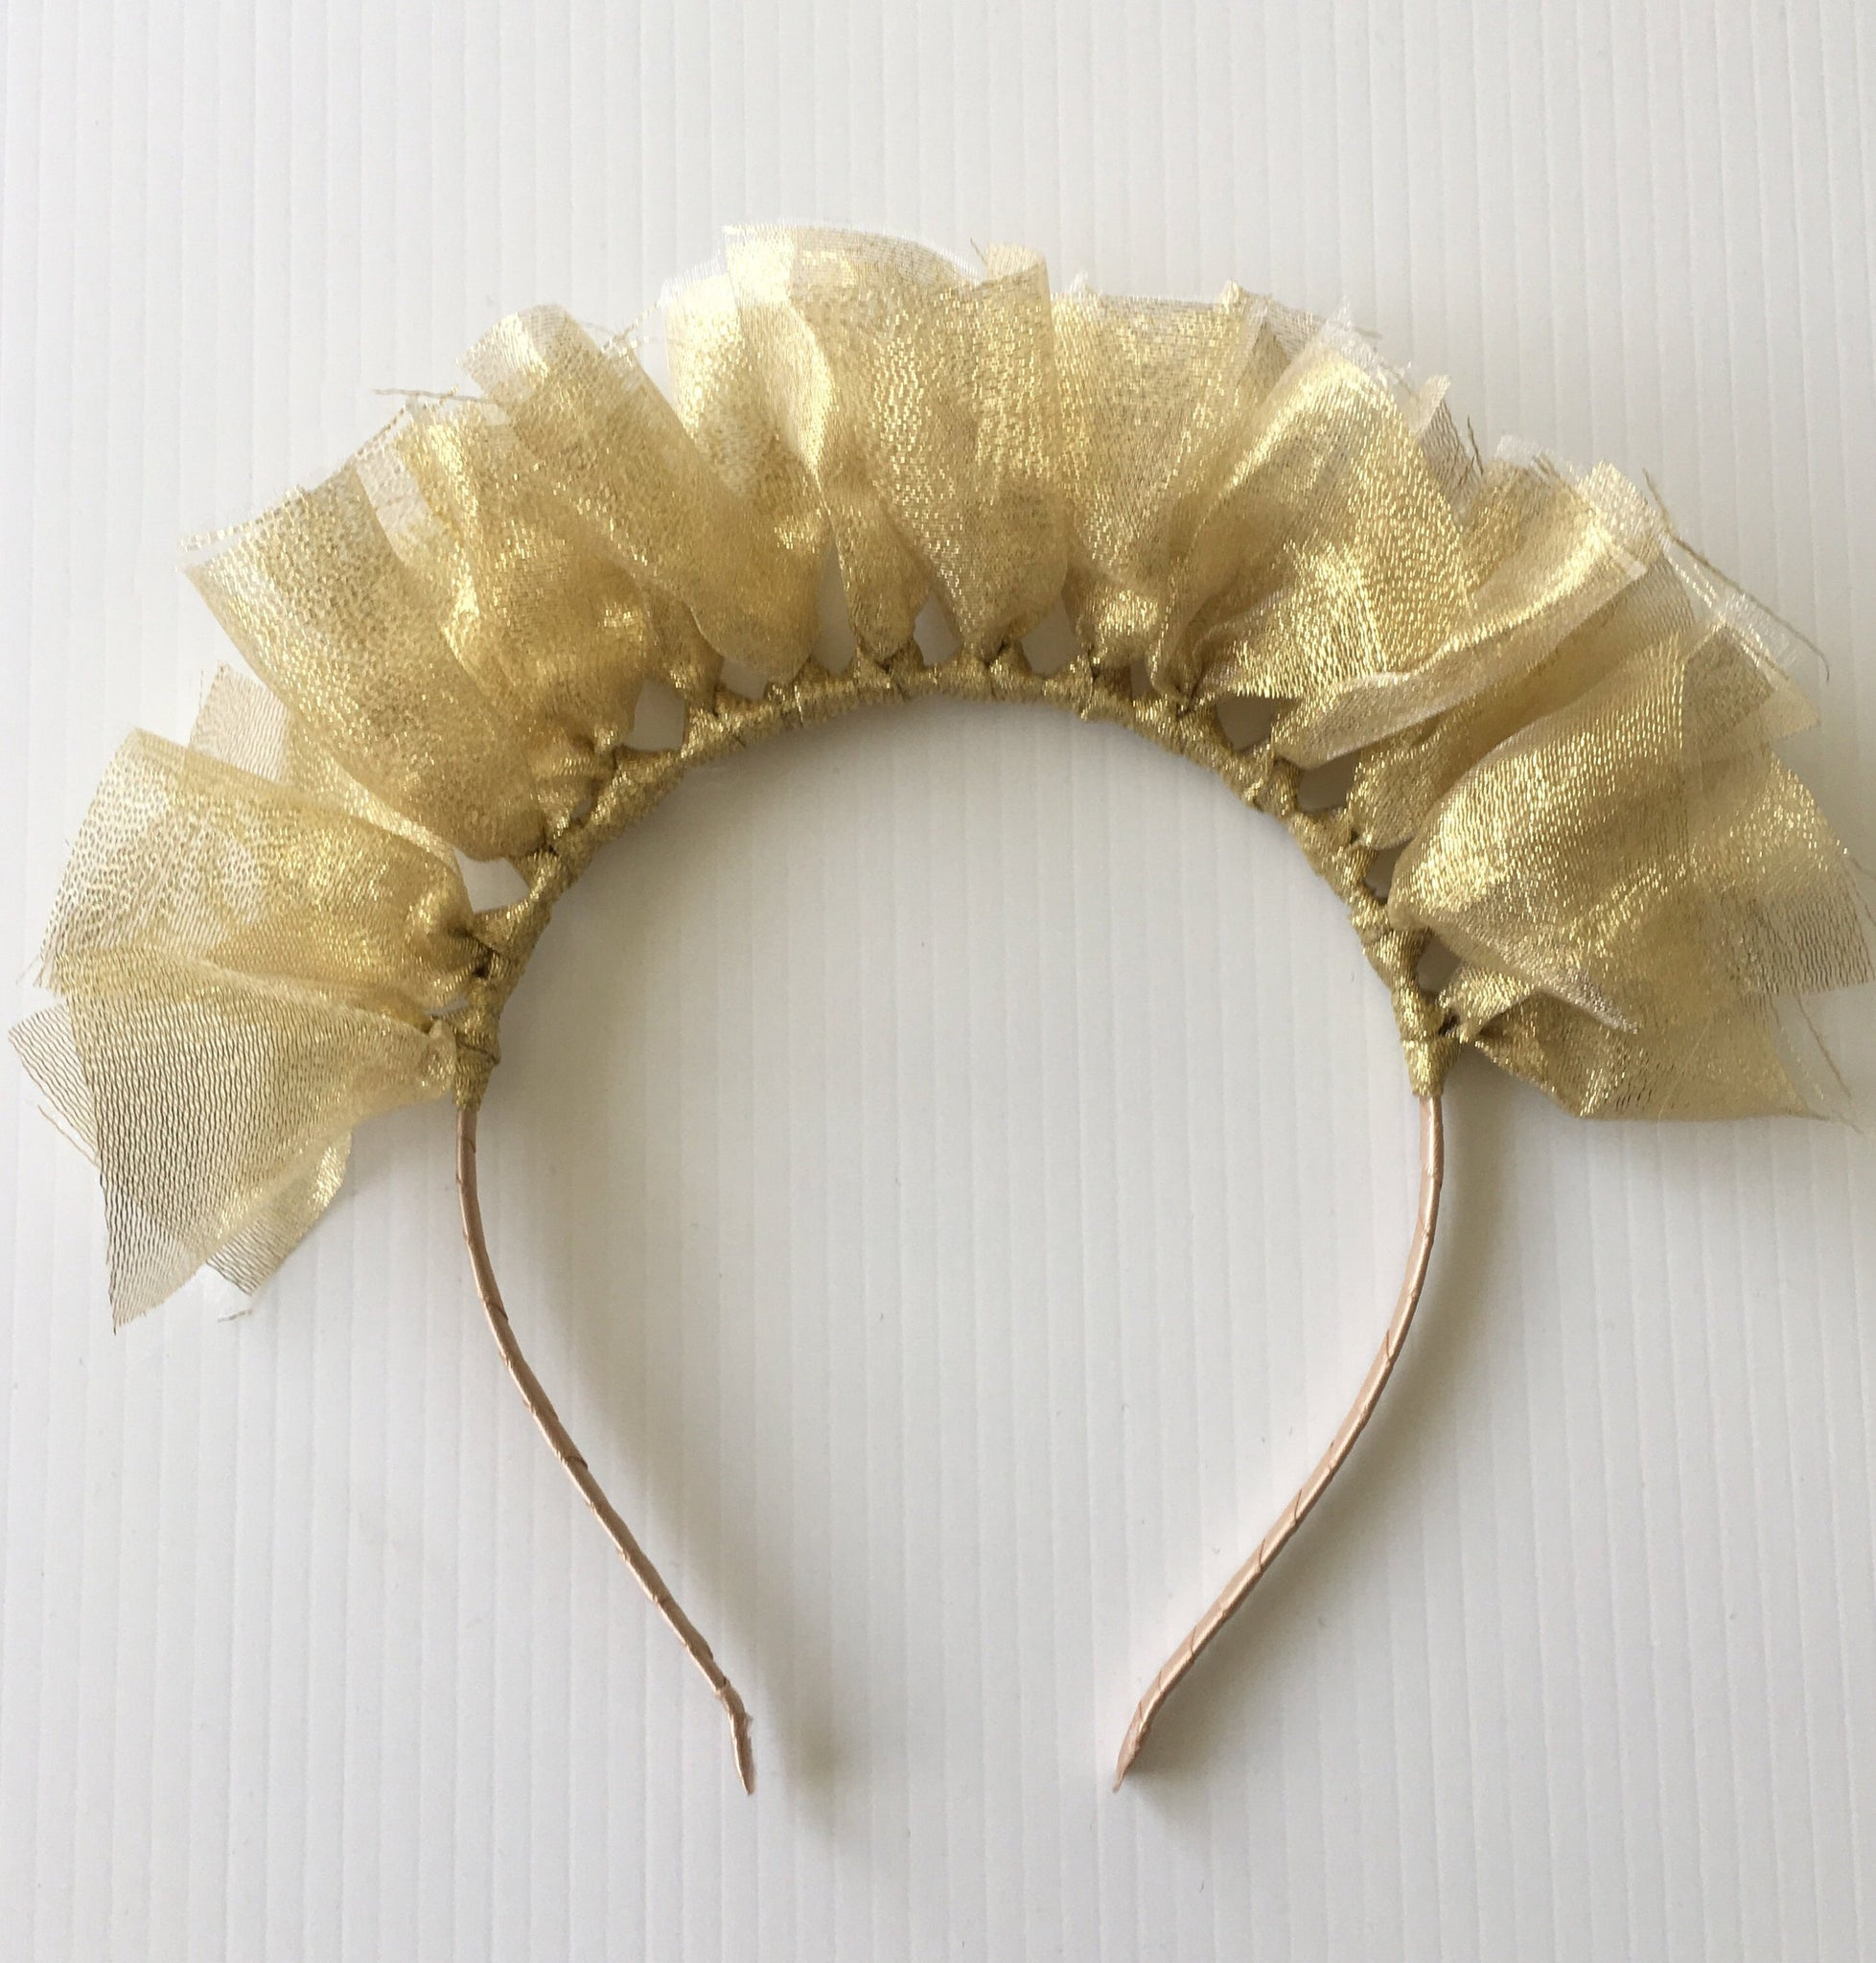 Estella Unique Gold-Tulle Headpiece, Gold Derby Headband, Kentucky Derby Fascinator 2019, Women's Fashion Headband, Spring Racing Crown